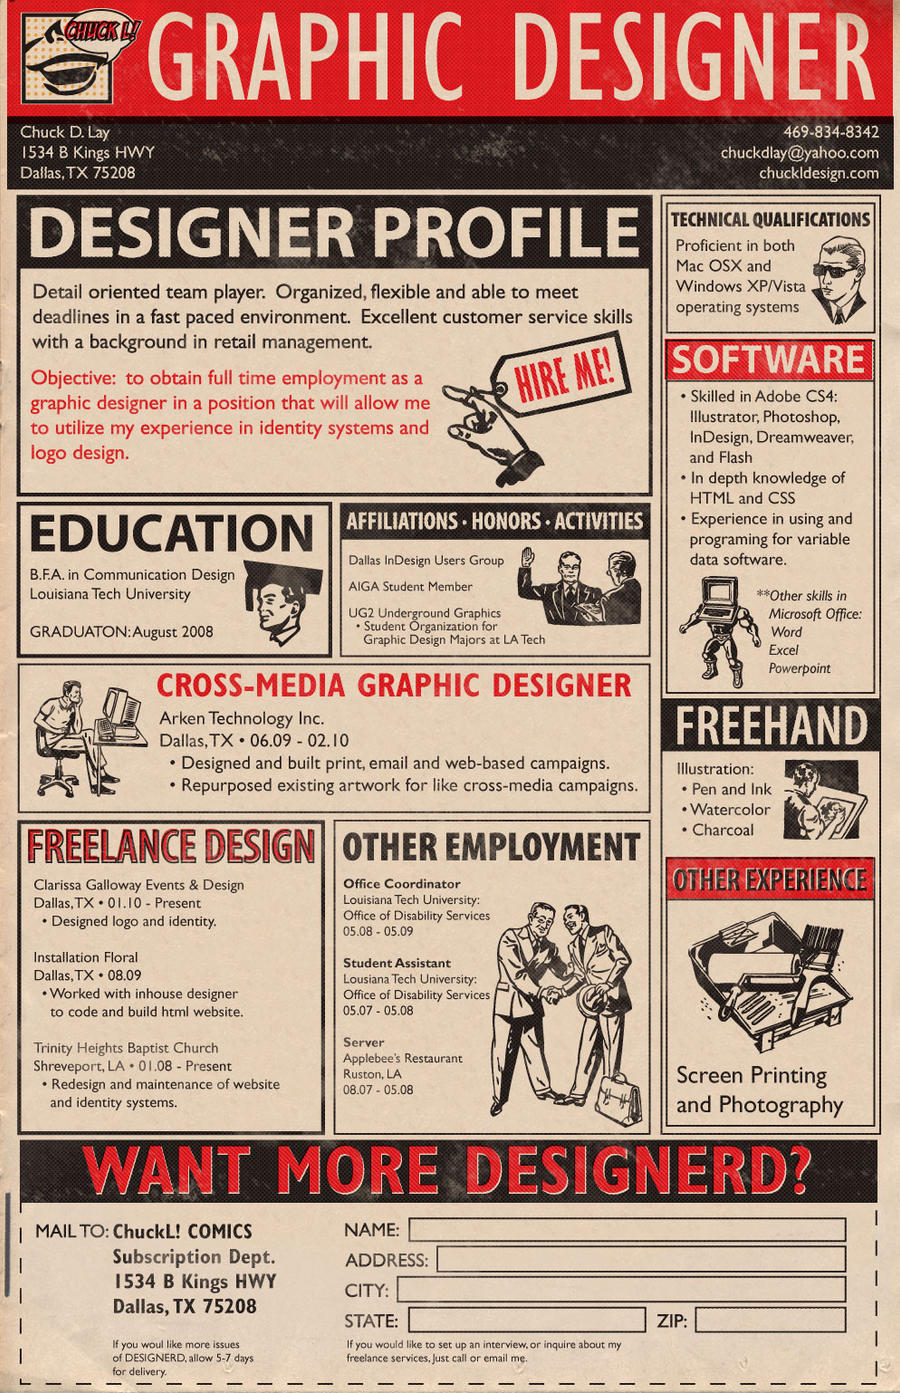 Updated Resume by ChuckDLay